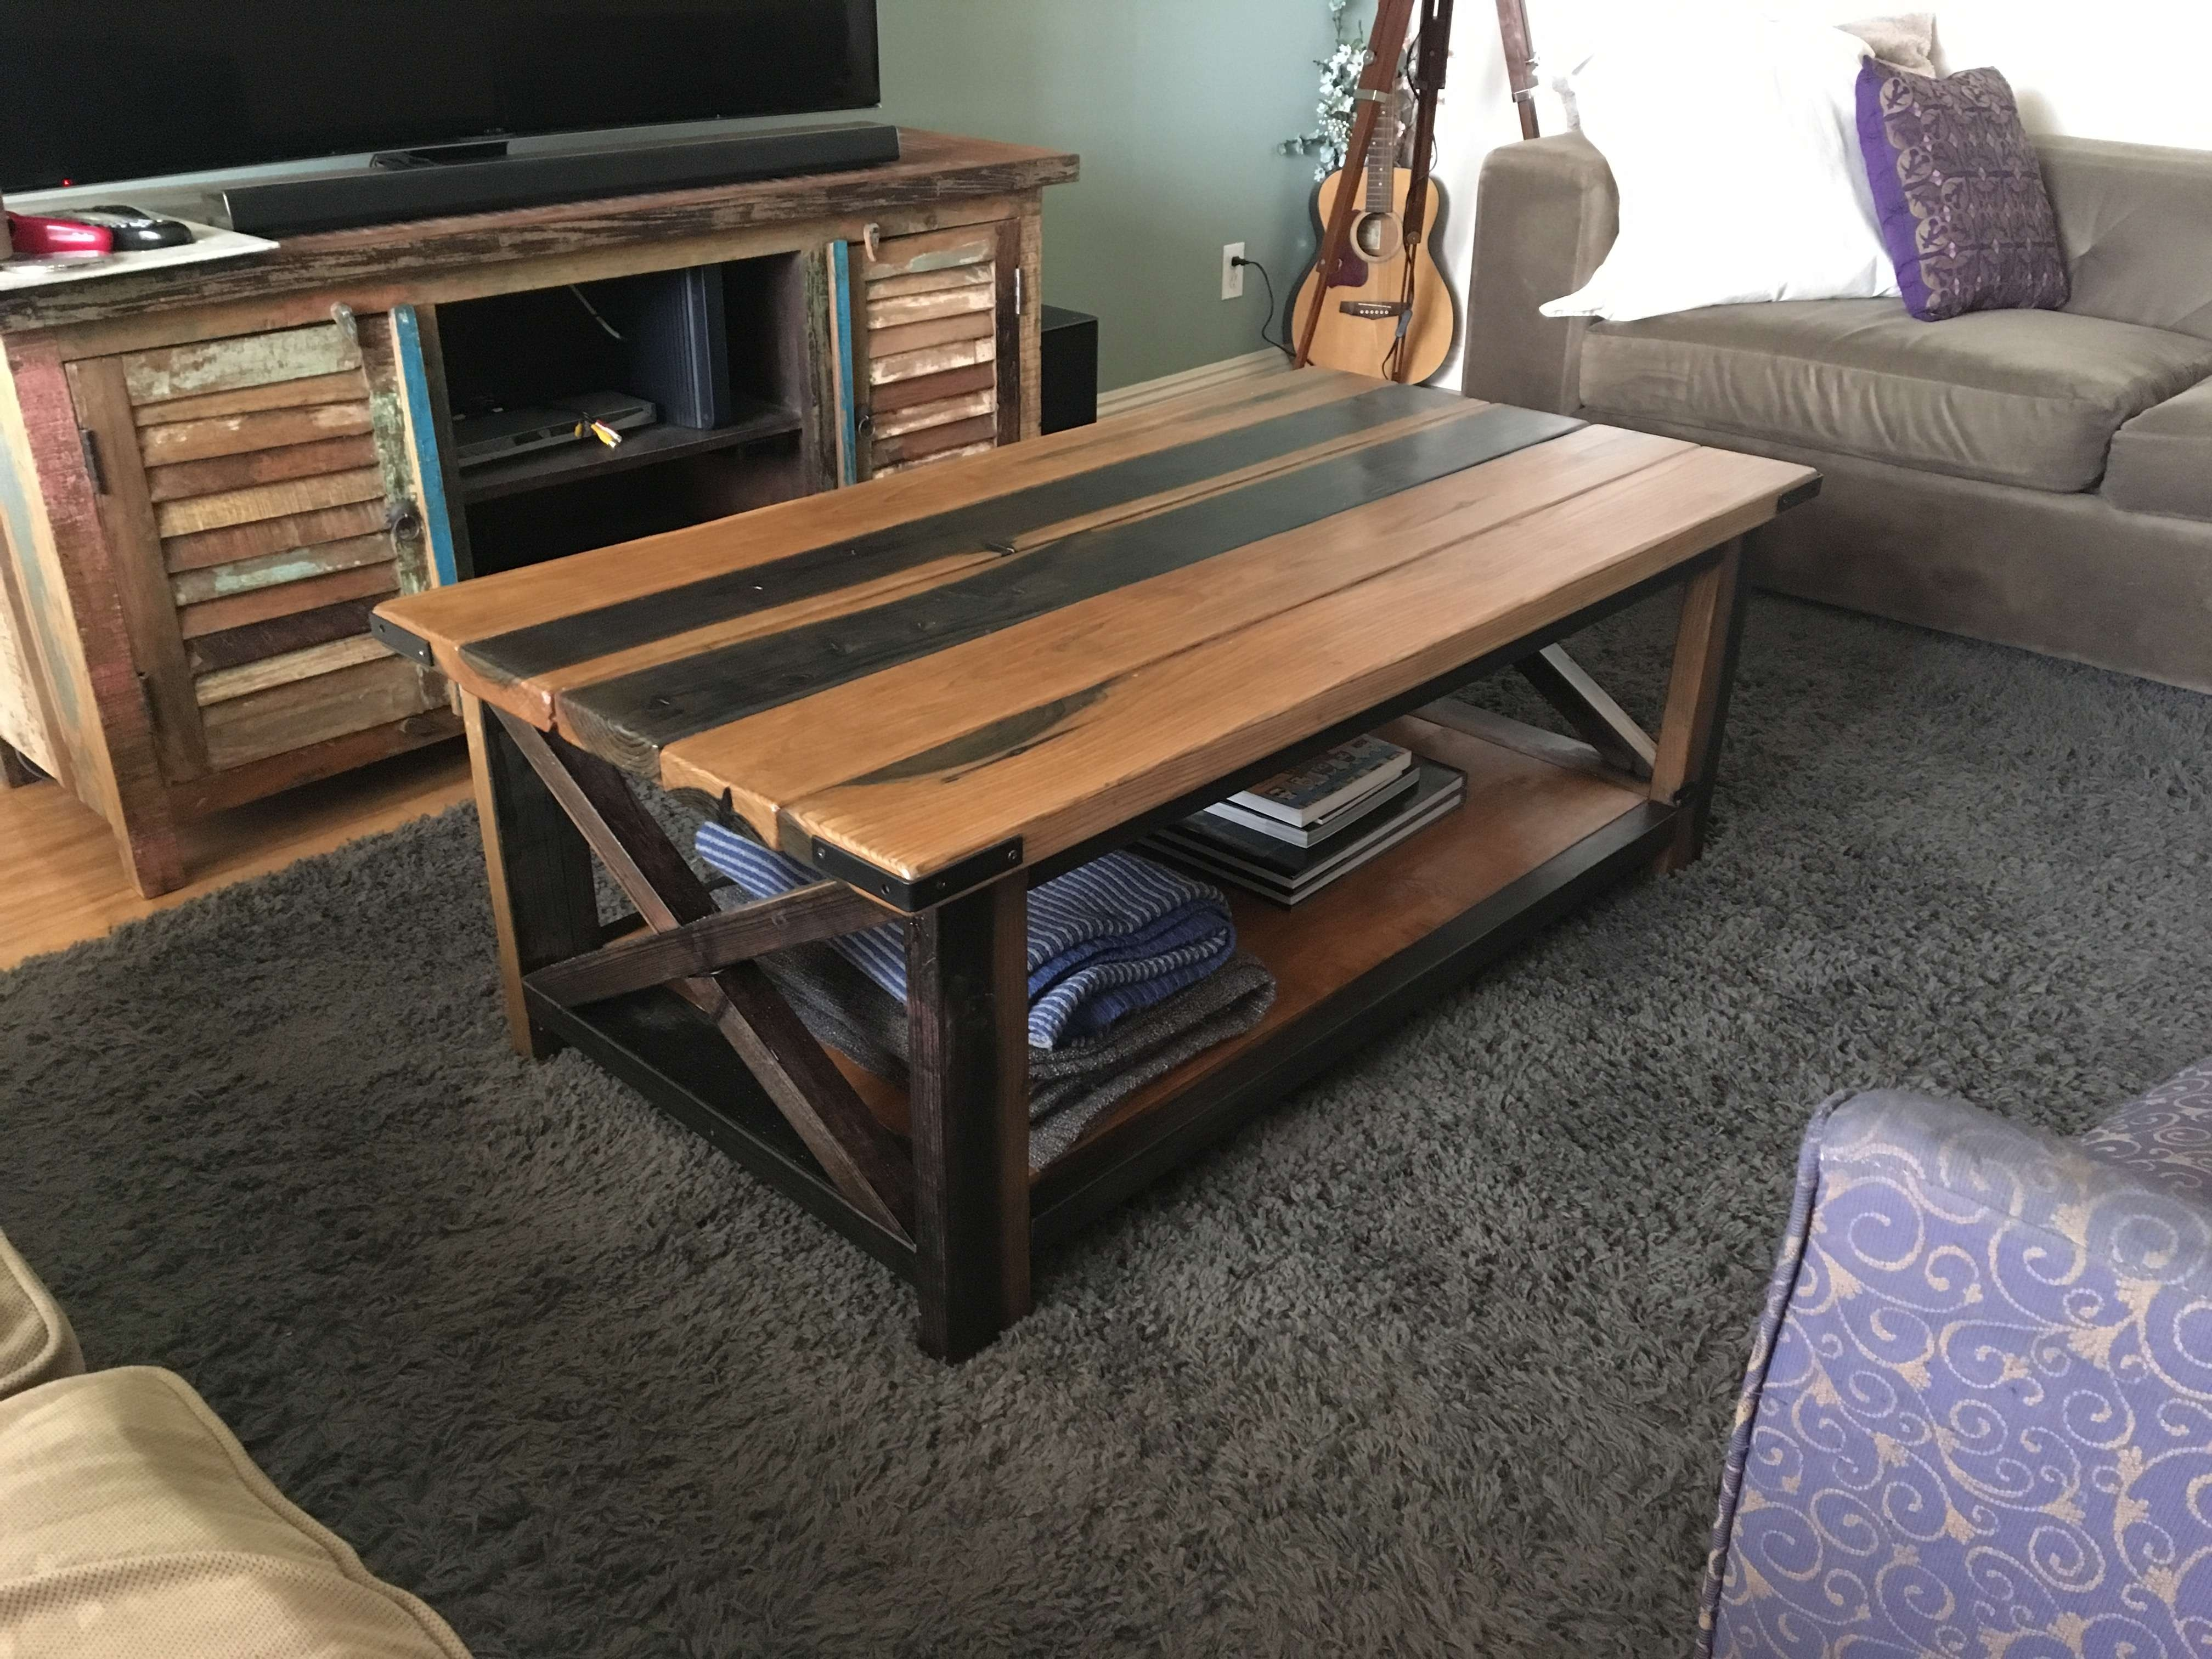 Famous Rustic Wood Diy Coffee Tables Pertaining To Diy Rustic Coffee Table – Album On Imgur (View 16 of 20)